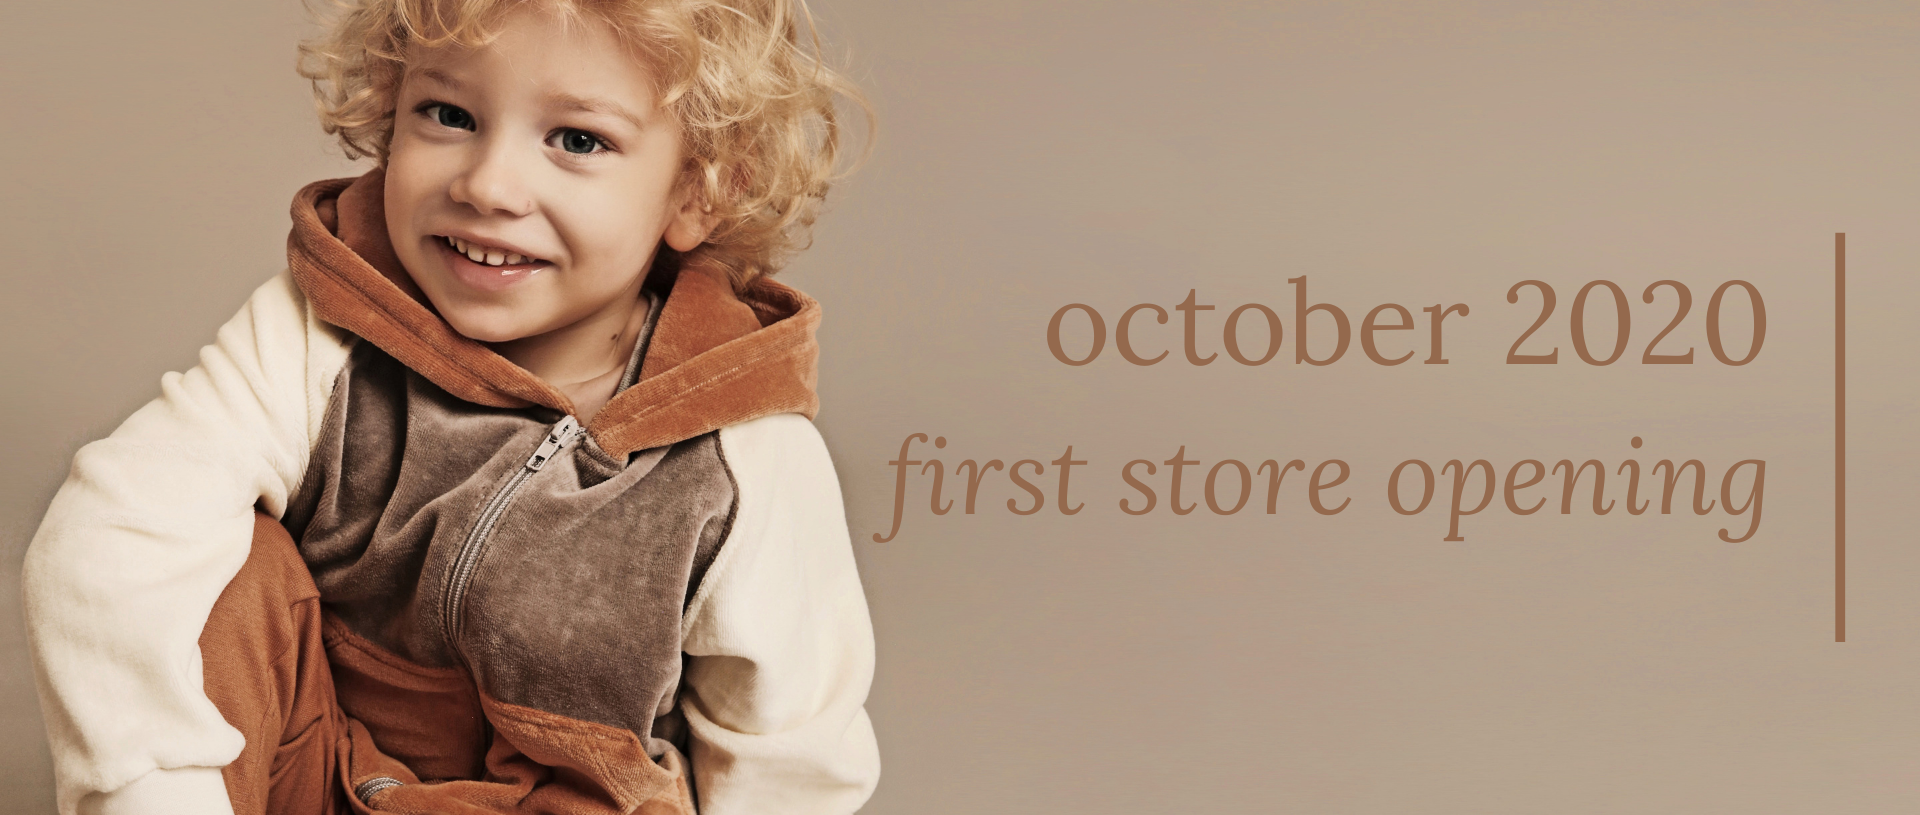 Store opening - October 2020